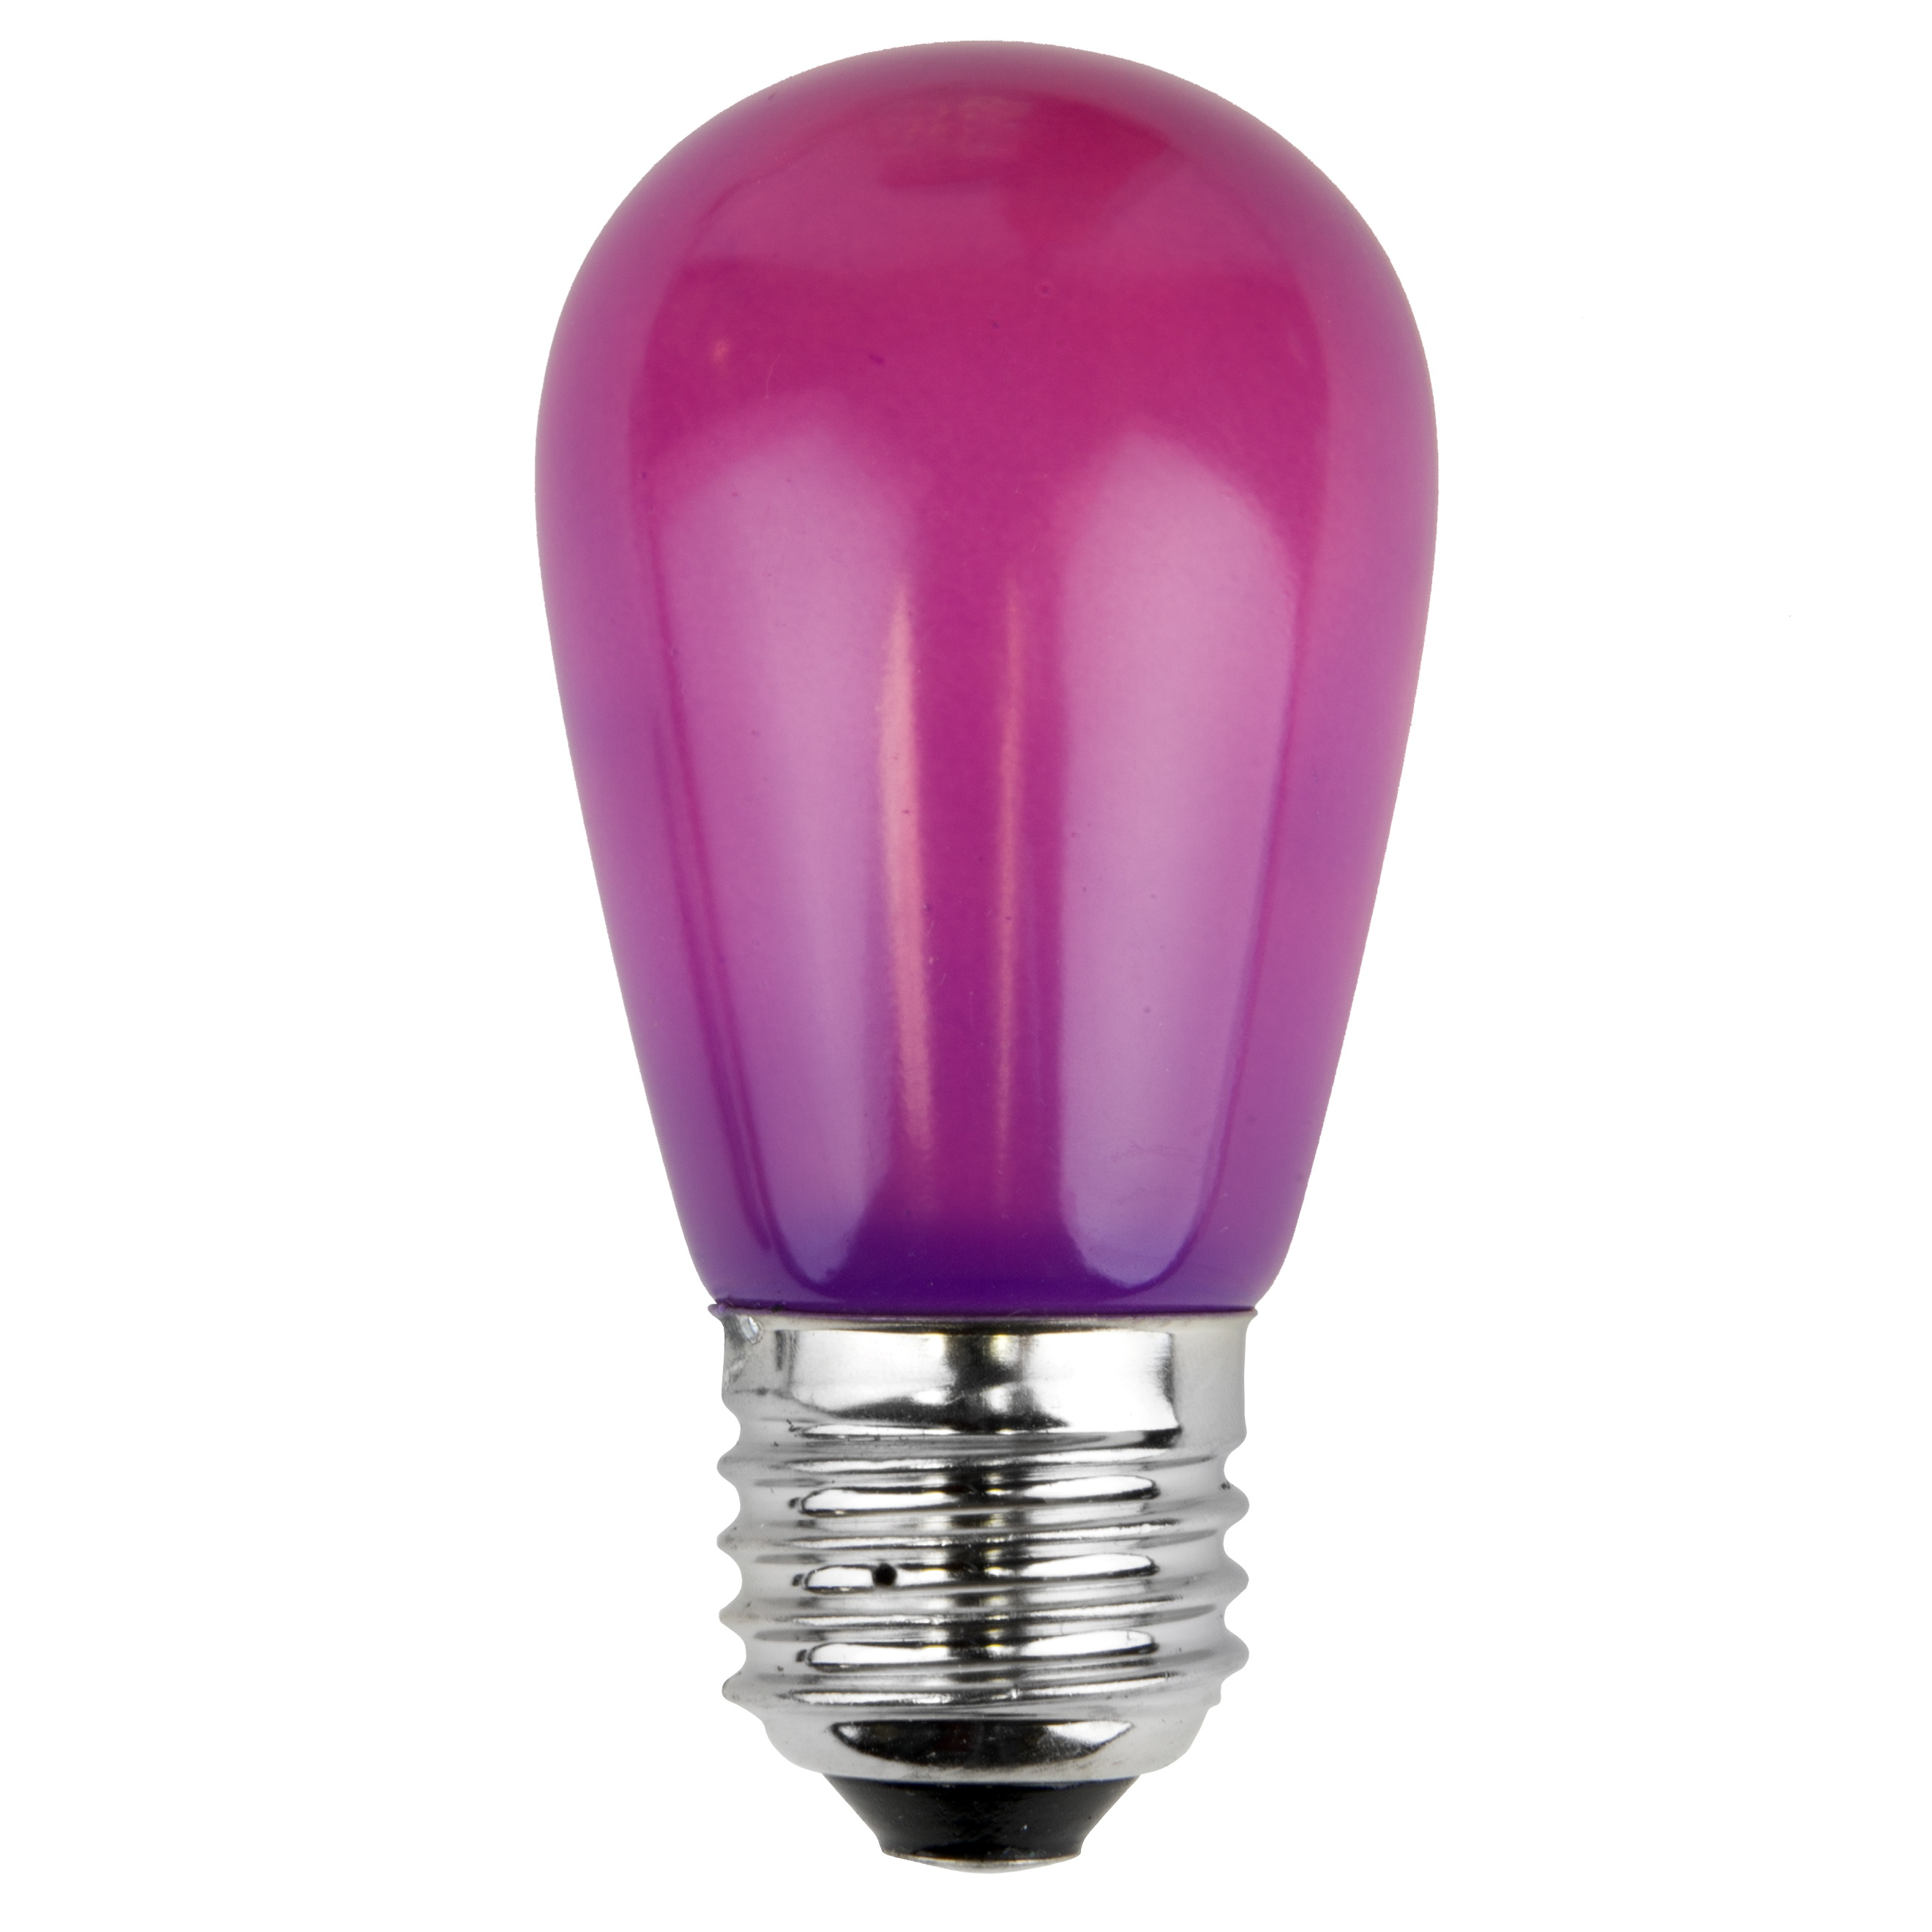 11S14 Opaque Purple Incandescent Sign Lamp